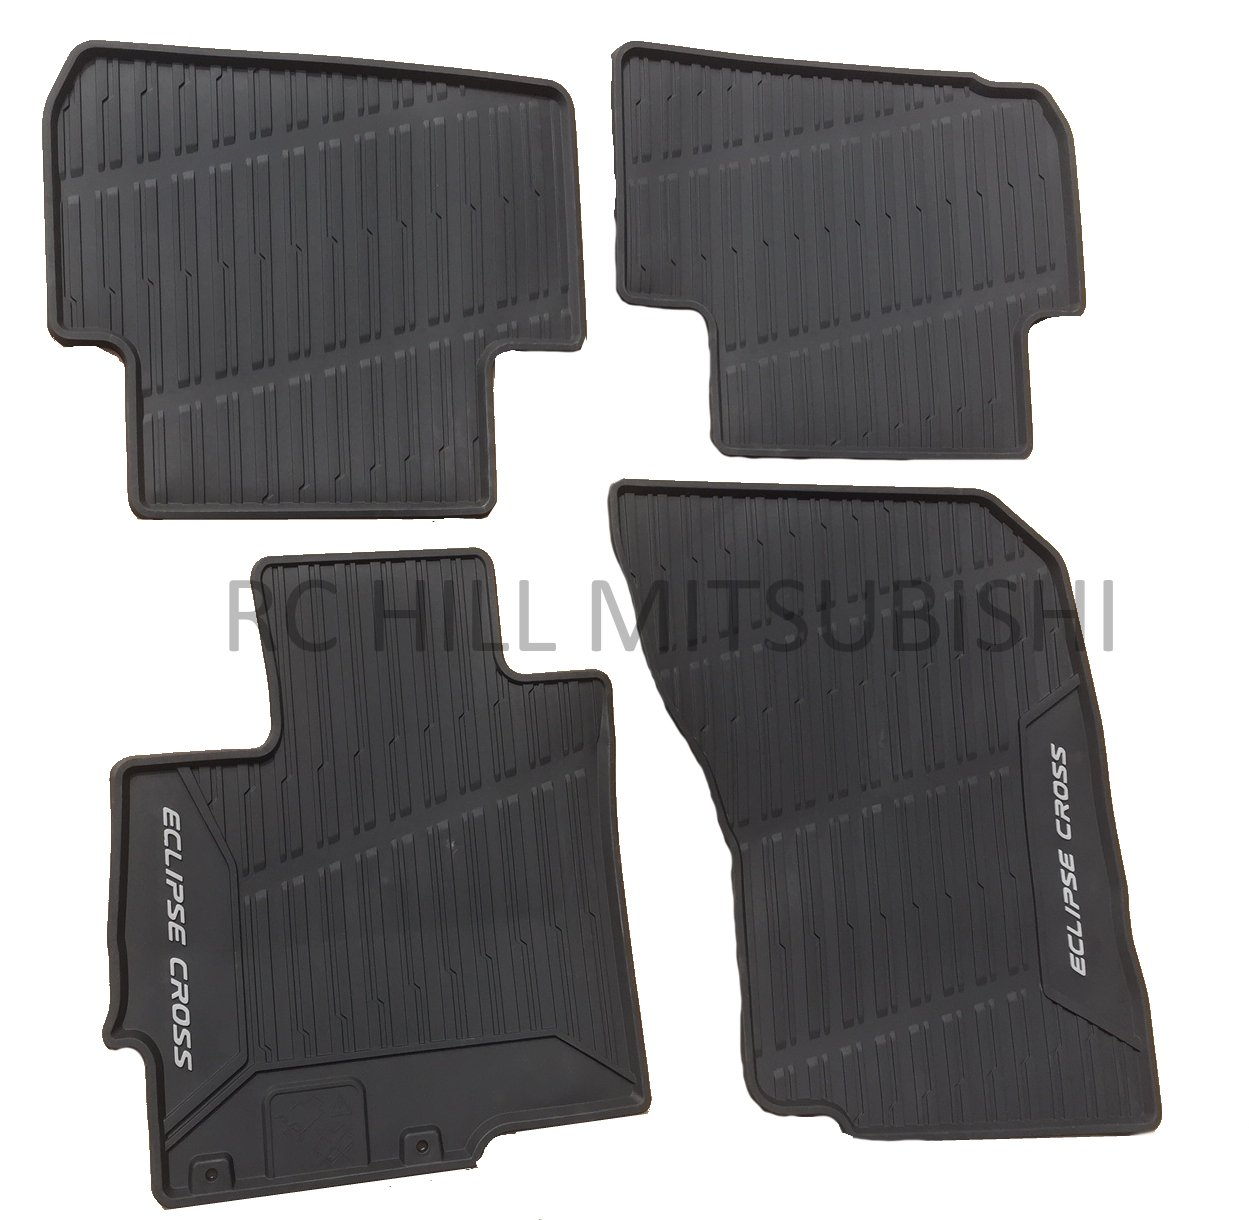 Mitsubishi in Stock! 2018 Genuine Eclipse Cross All Weather Rubber MATS Floor MZ314979